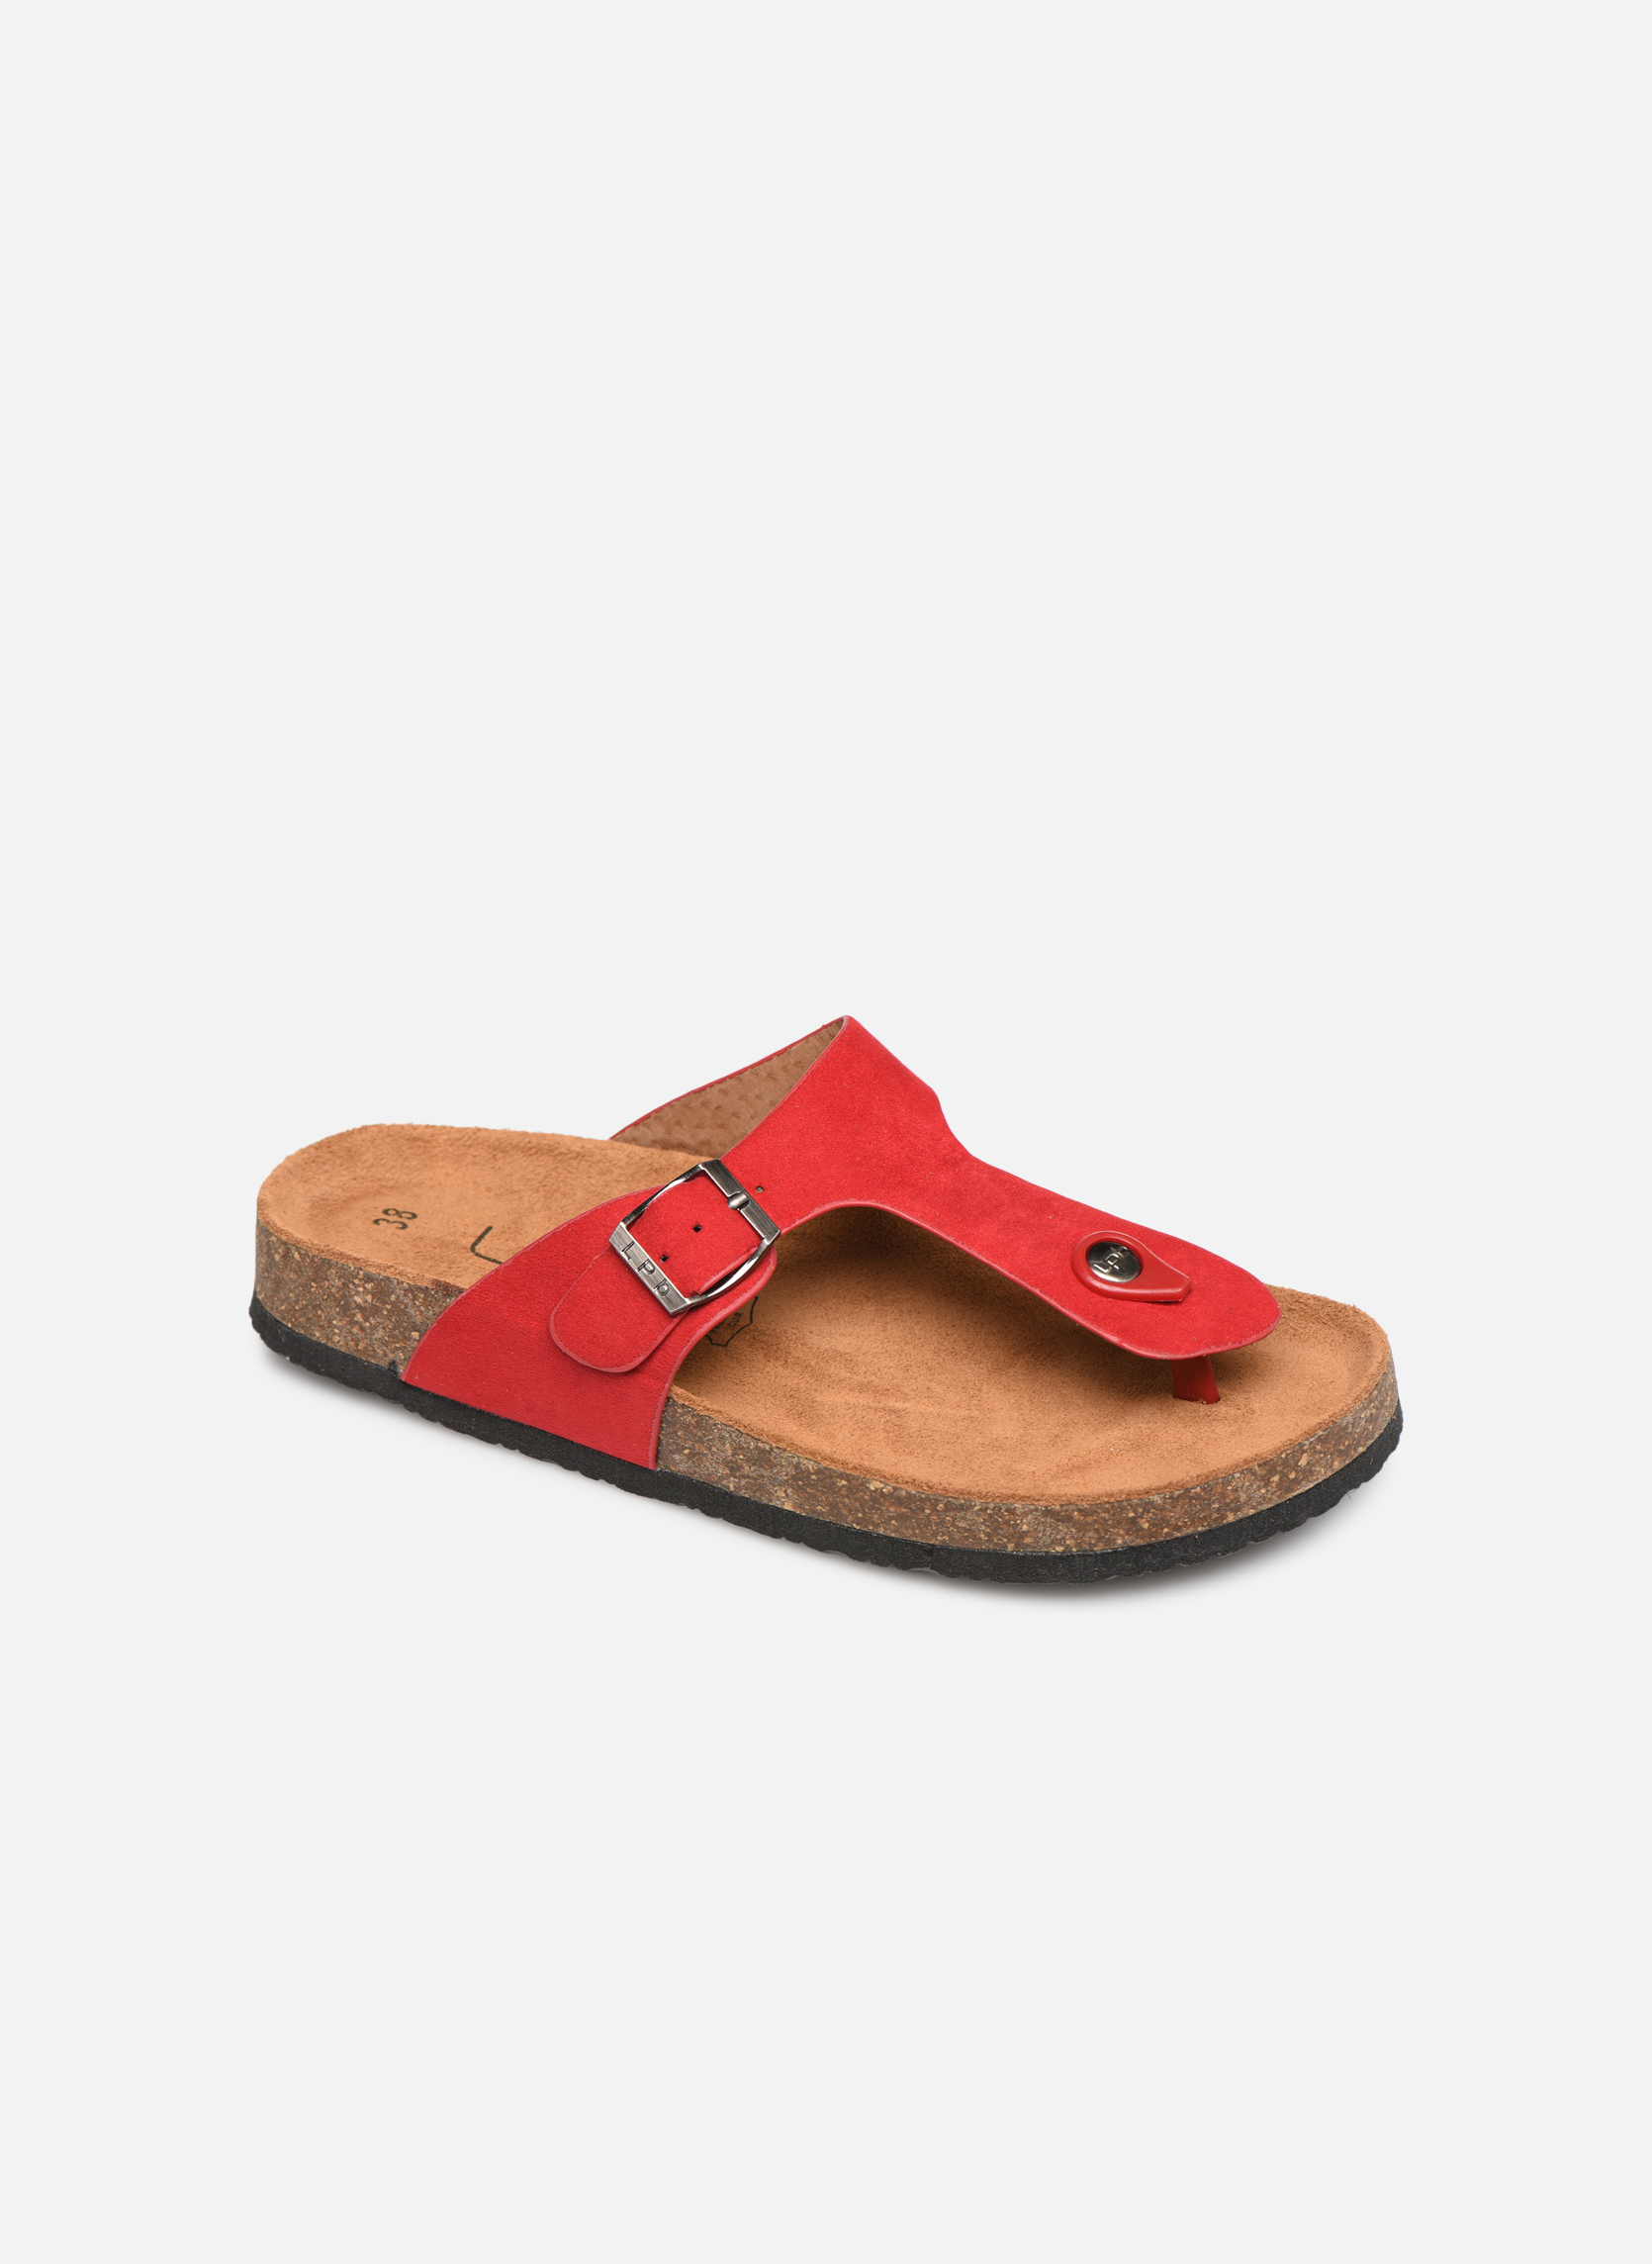 Slippers Les P'tites Bombes Rood